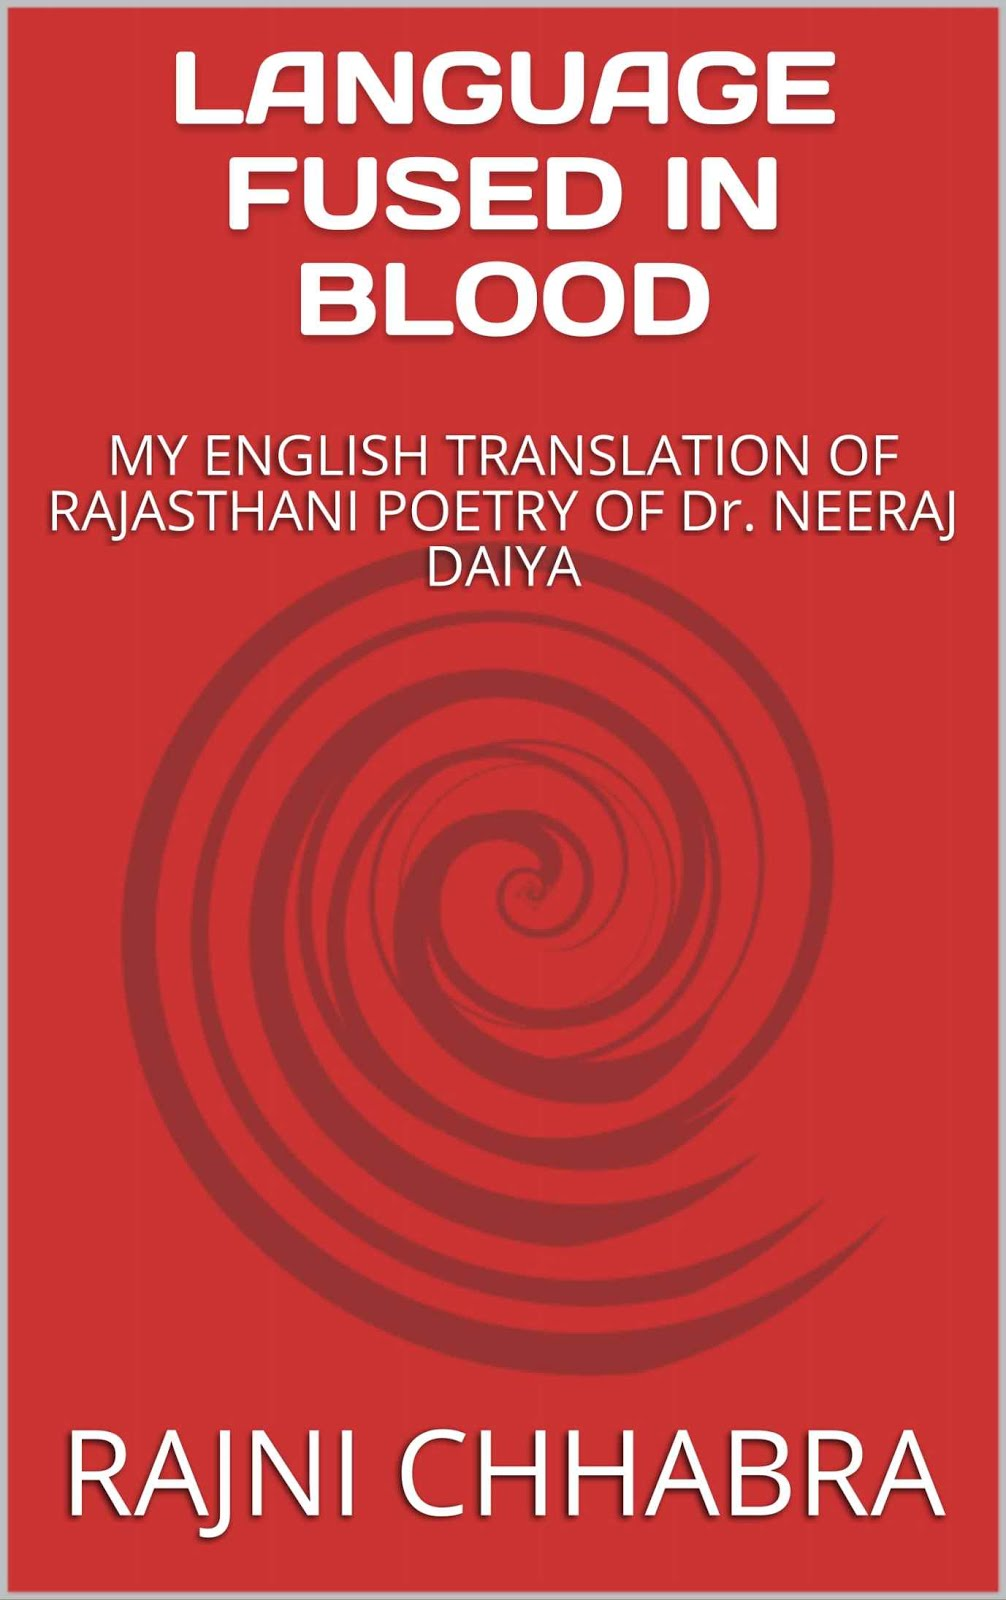 RAJASTHANI POETRY OF Dr. NEERAJ DAIYA